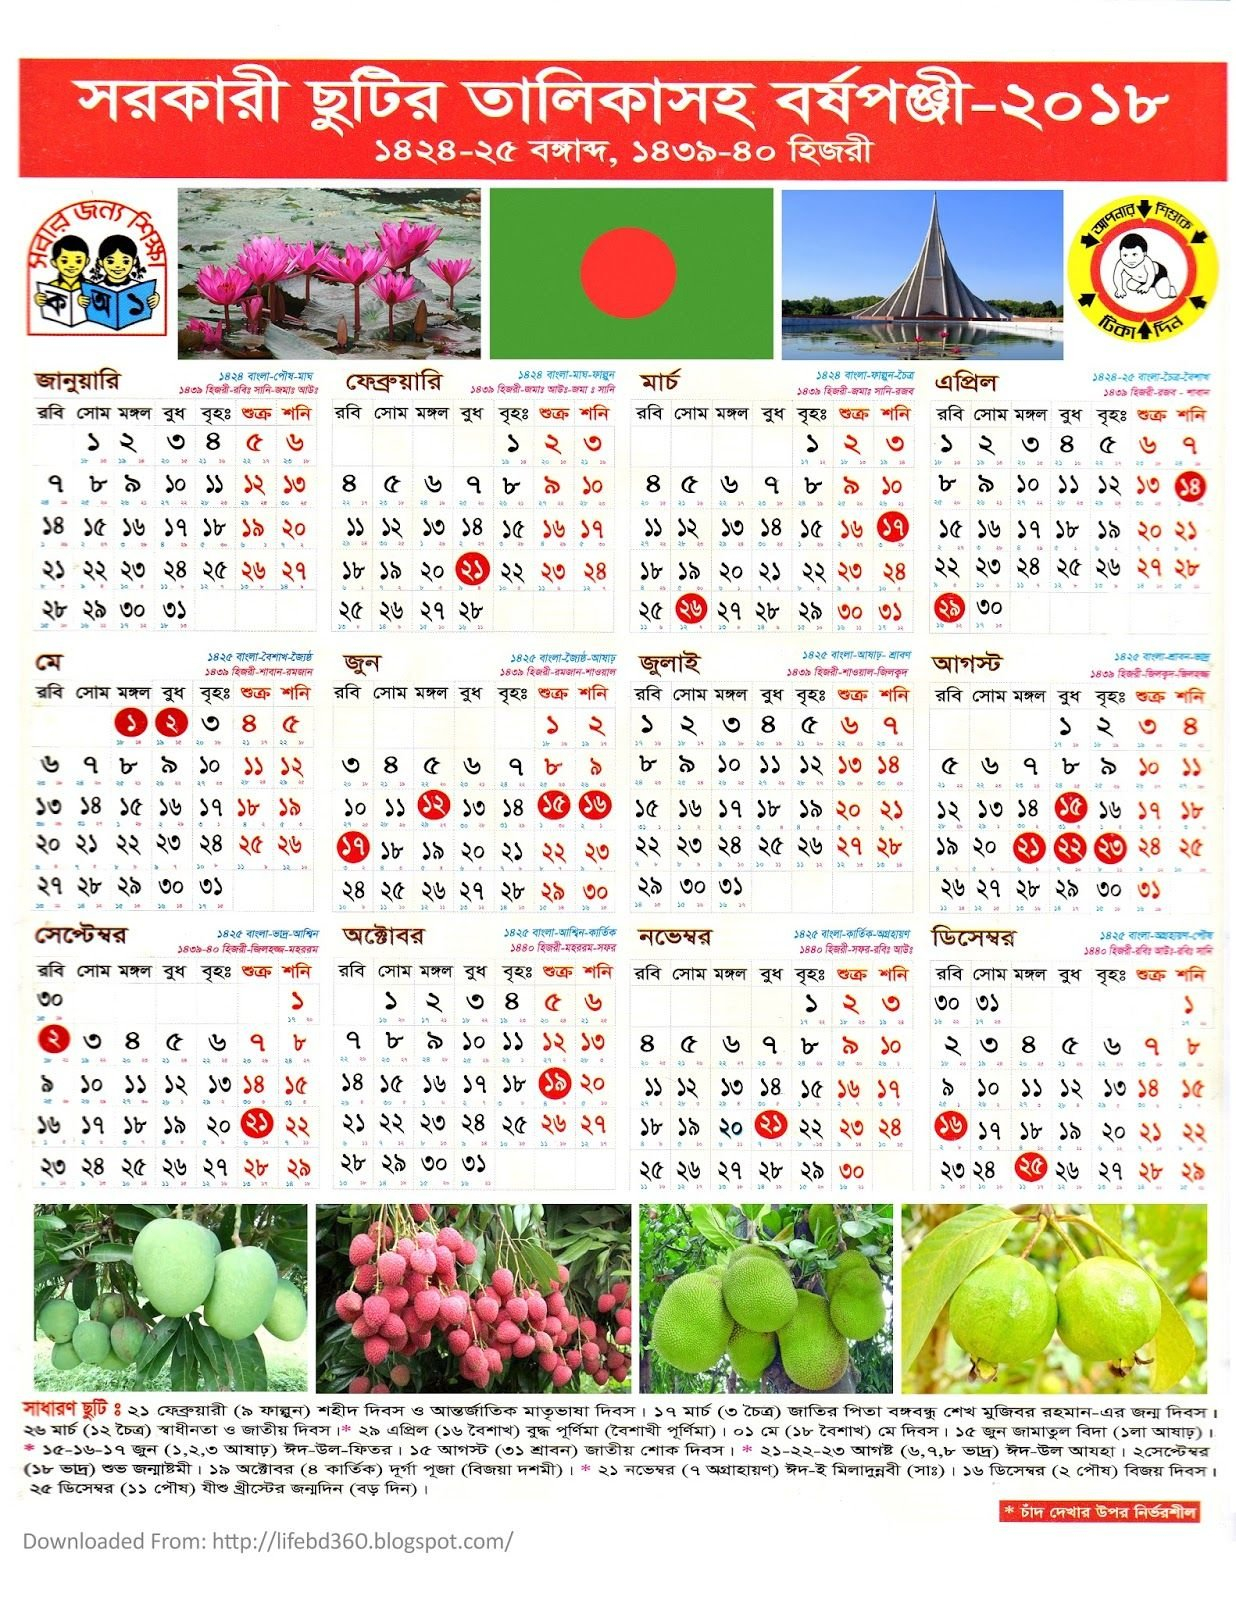 Download Printable Pdf Of Bangladesh Government Holiday Calendar Calendar 2019 Government Holidays